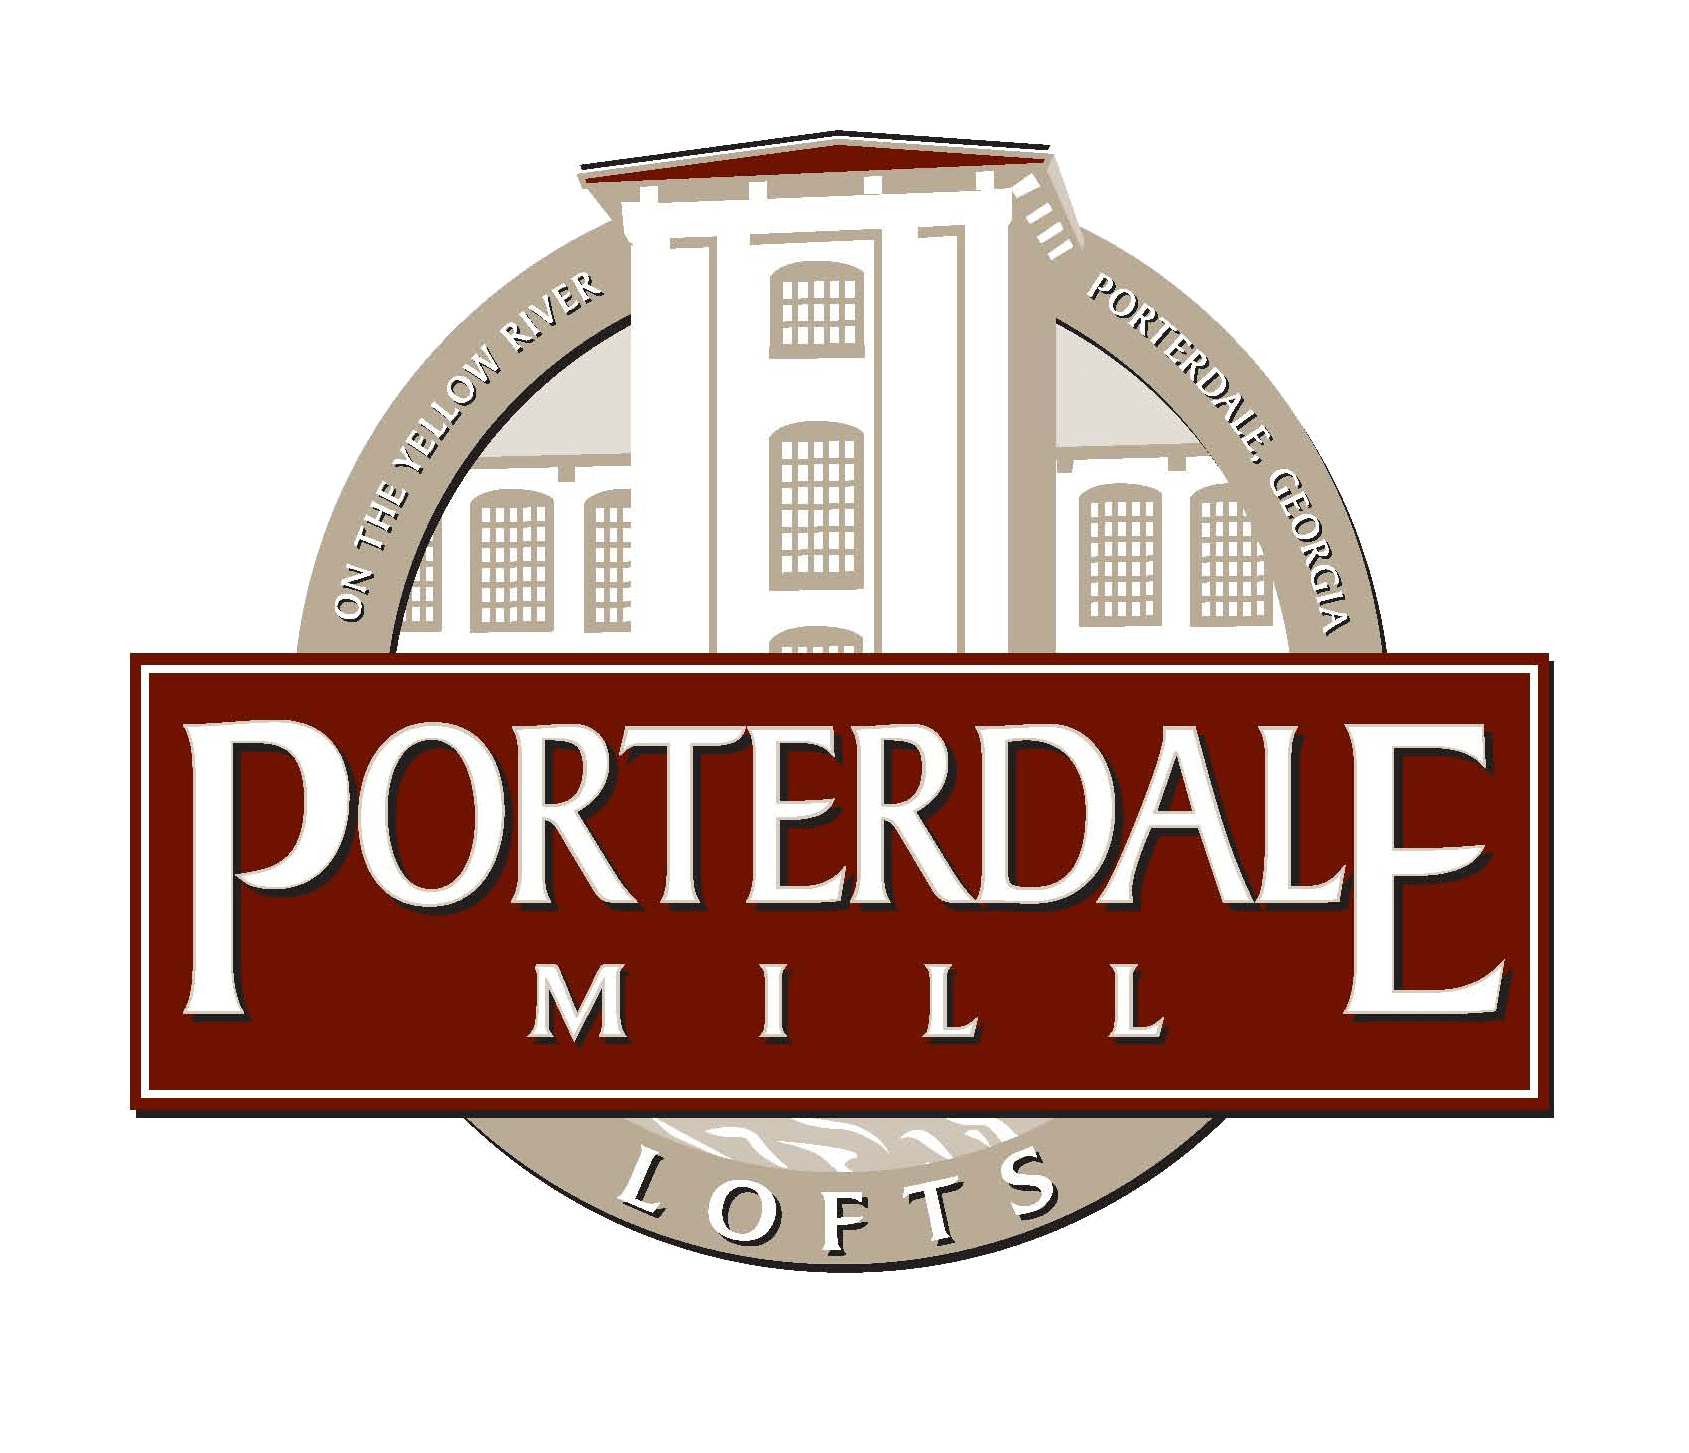 Porterdale Mill Lofts